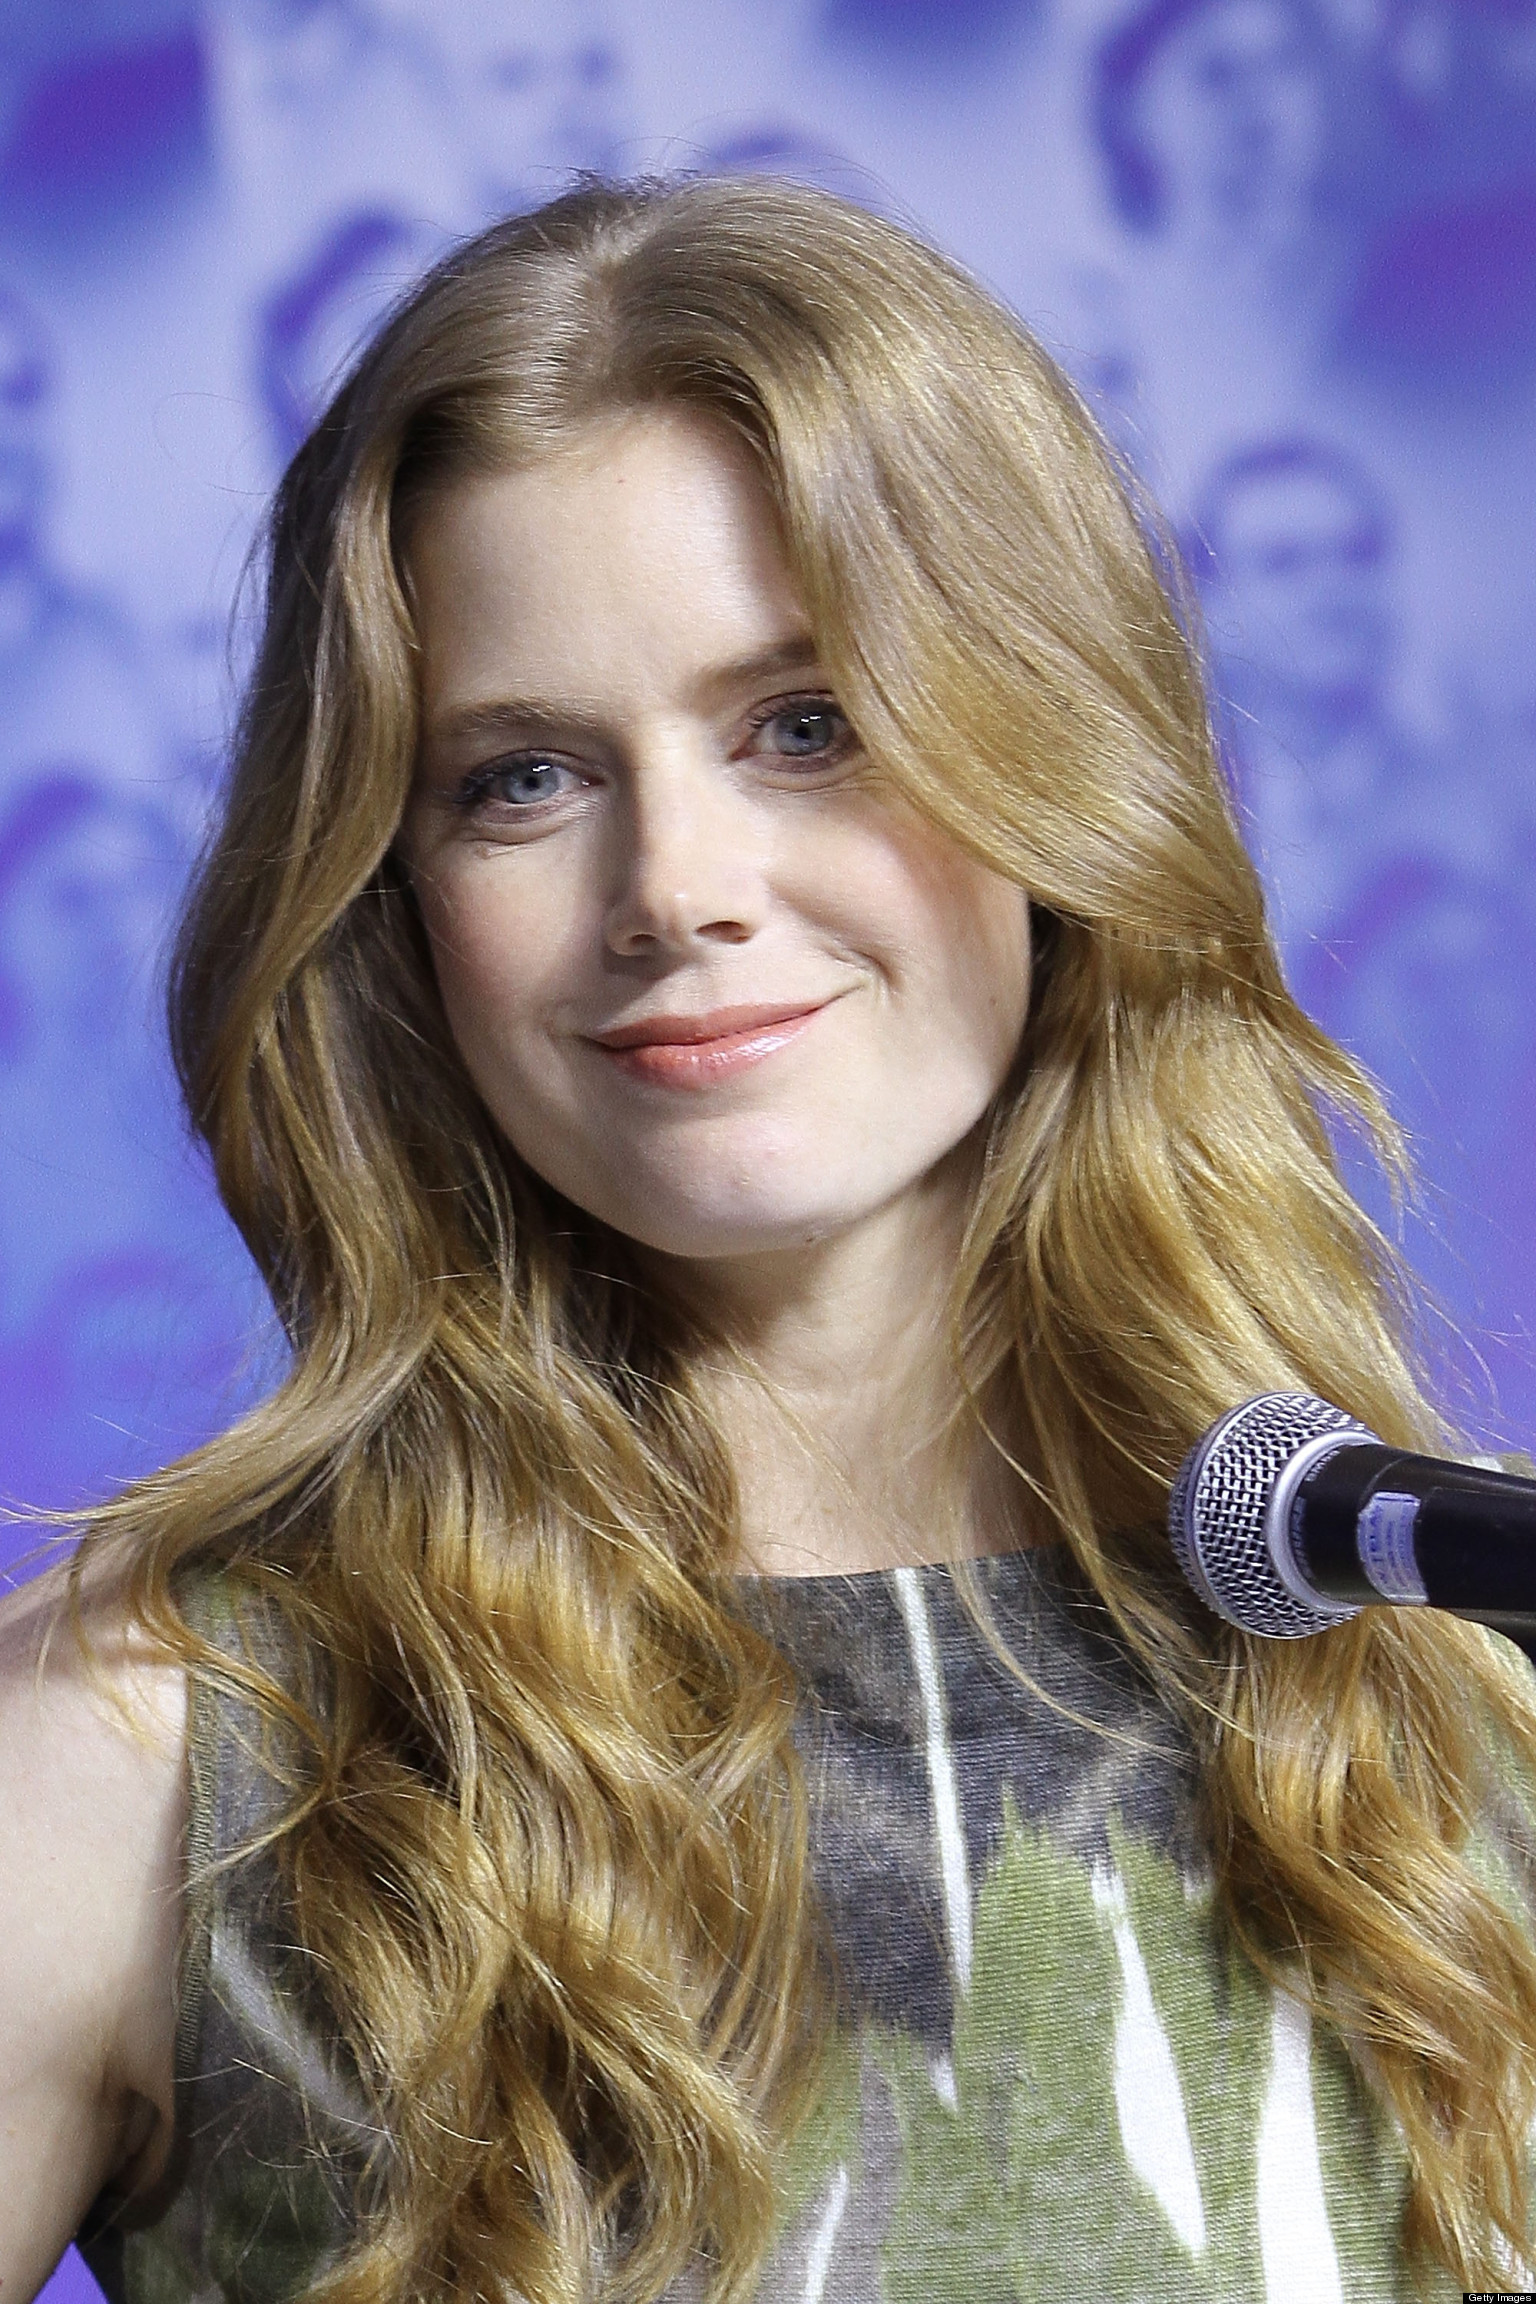 Amy Adams In 'The Master': What's Her Character's Name?